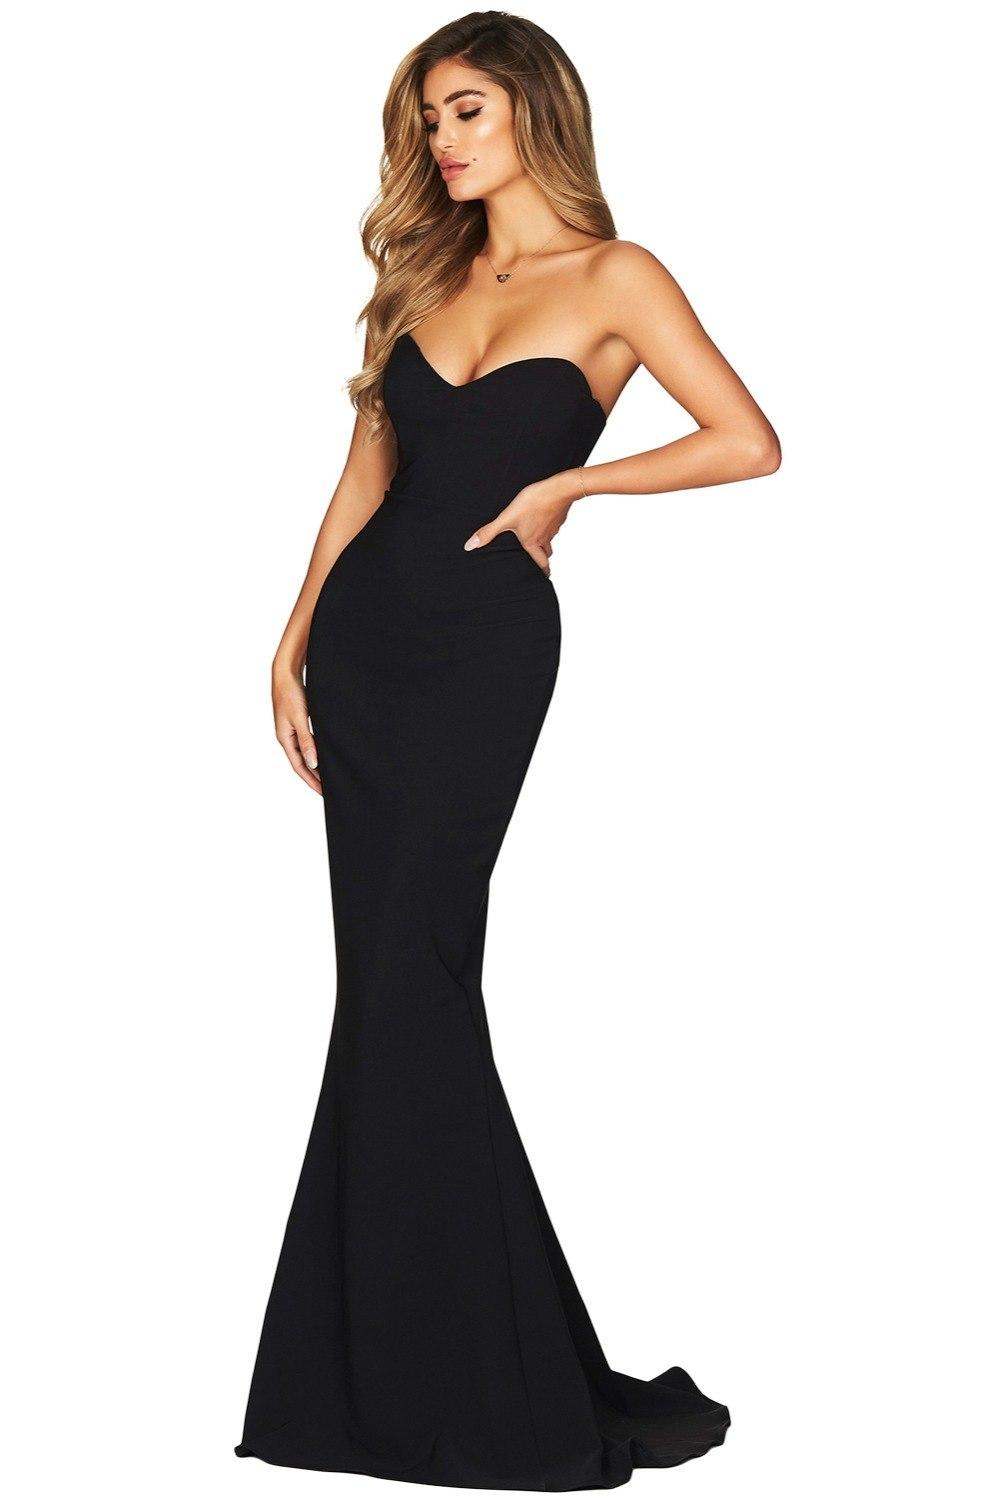 New Sexy Long Party Dress Black Strapless Sweetheart Neckline Mermaid Gown  Vestido De Festa Longo Robe De Soiree LC610868 Shop Cocktail Dress Cocktail  Night ... 79add9977de